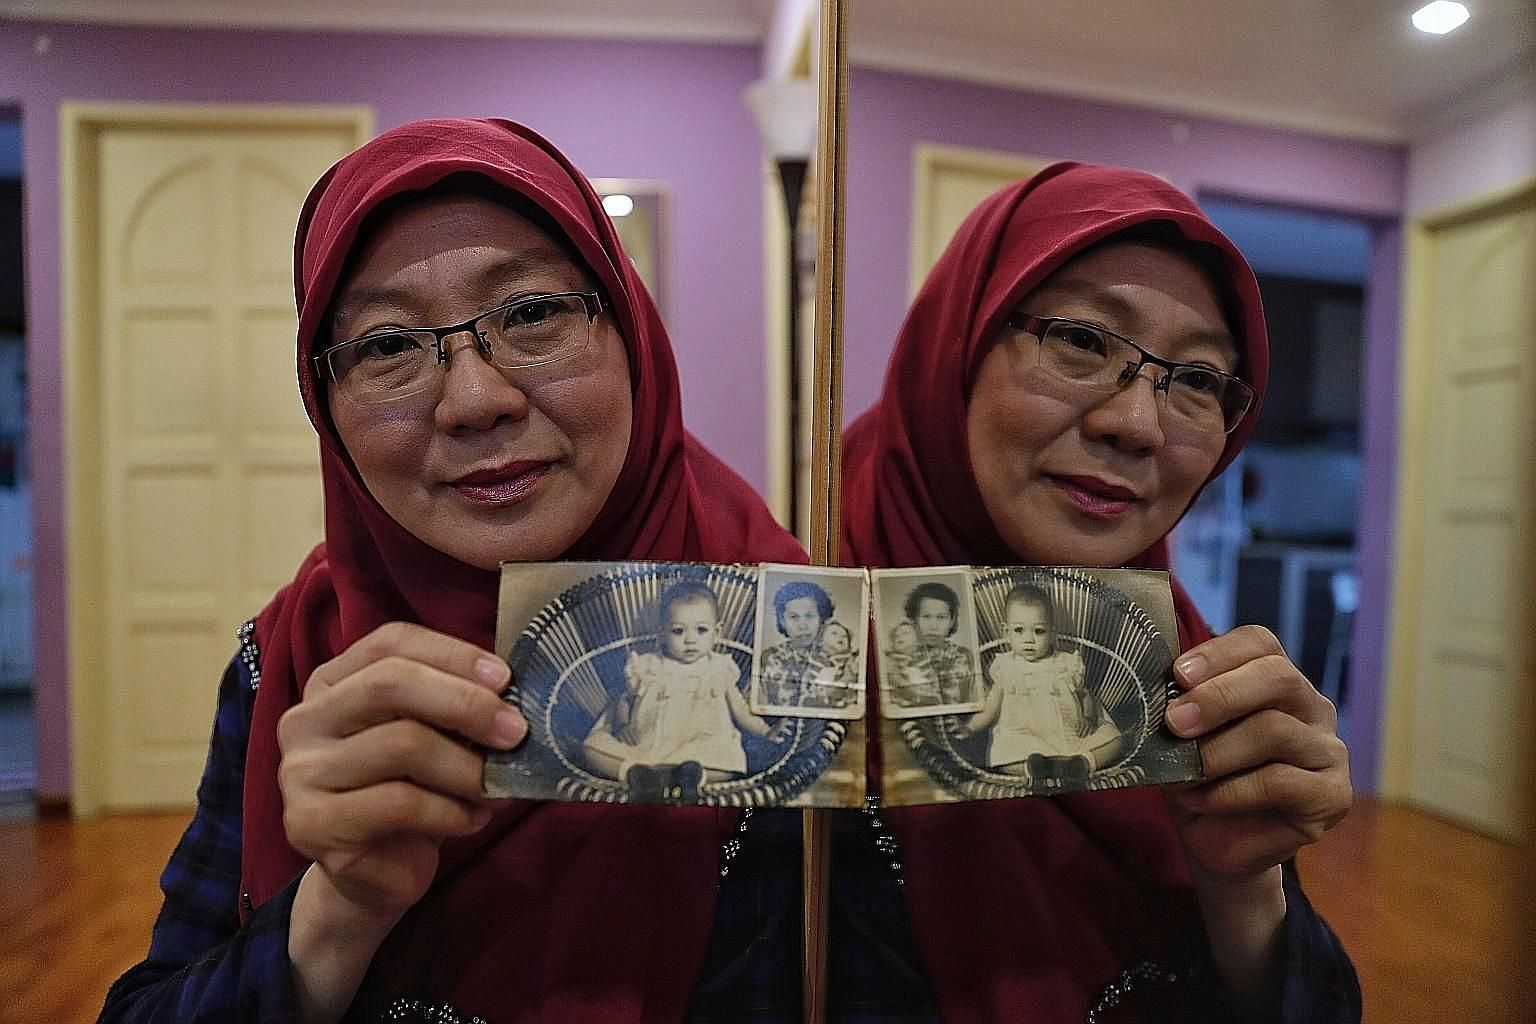 Madam Zahara Abdullah with her baby photos, including one taken with her late adoptive mother Habsah Masagos Omar. She also has adoption documents and her birth certificate, but they do not carry her birth parents' names.